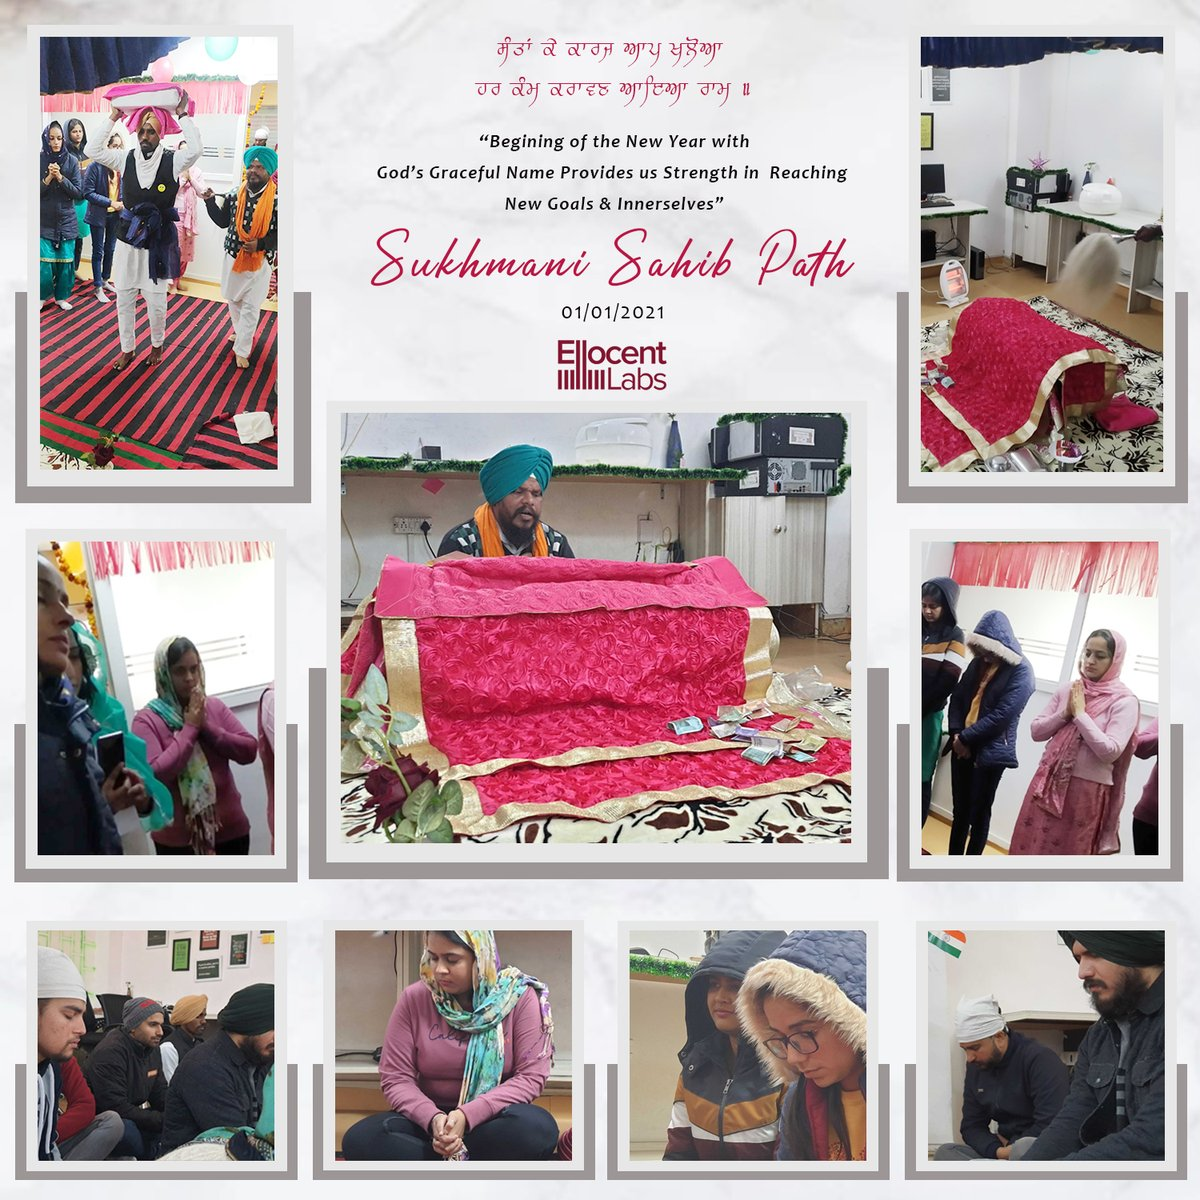 Few glimpses from our office celebrations #Celebration #newyear2021 #Newyearcelebration #devotion #newstarting